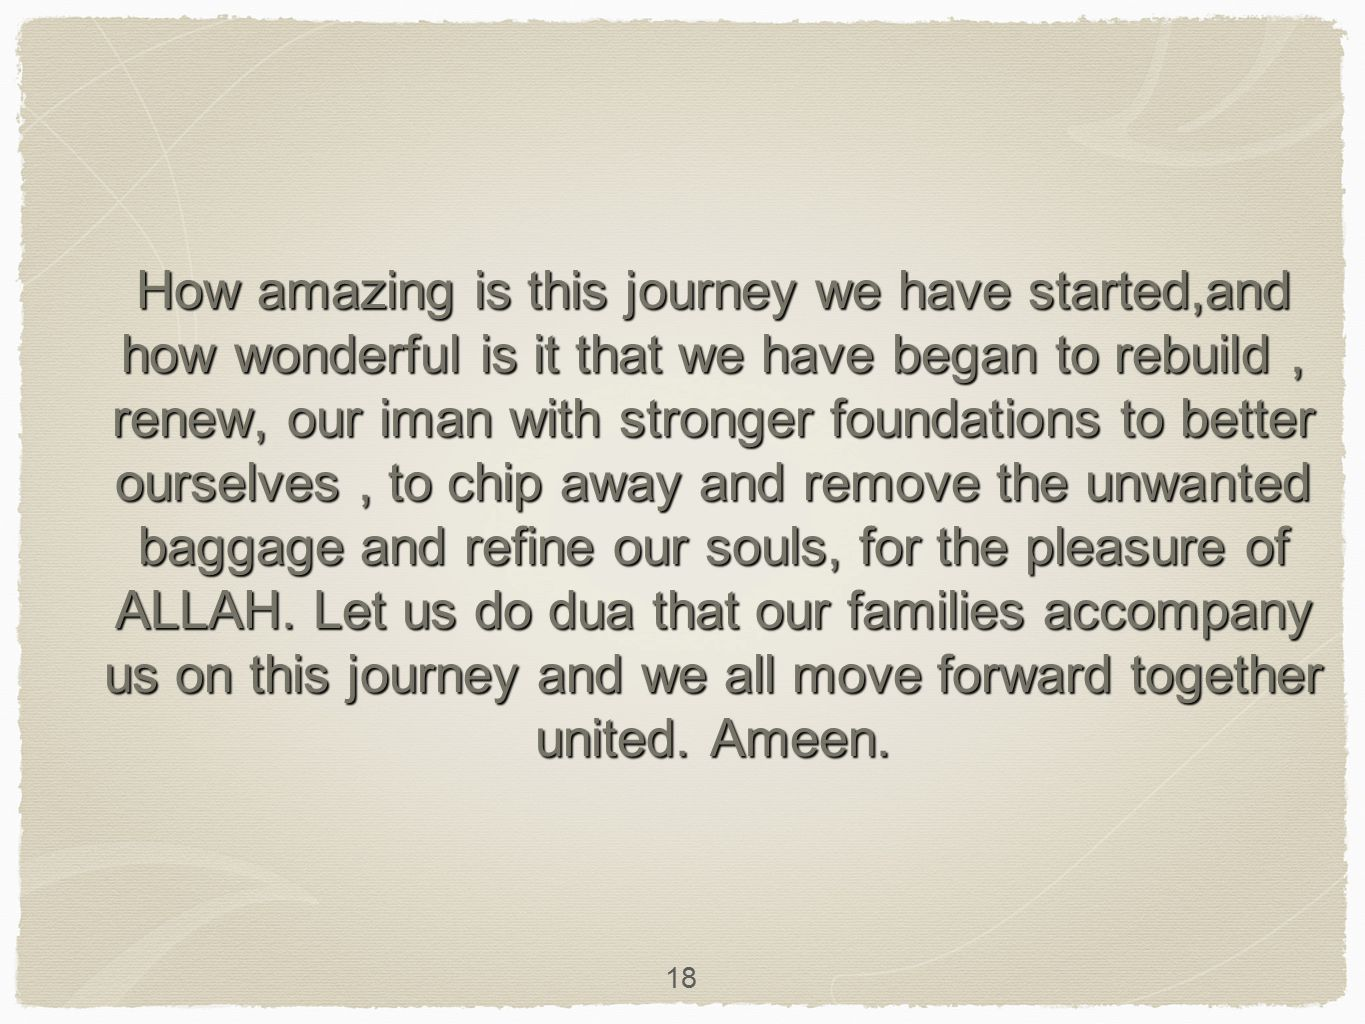 How amazing is this journey we have started,and how wonderful is it that we have began to rebuild, renew, our iman with stronger foundations to better ourselves, to chip away and remove the unwanted baggage and refine our souls, for the pleasure of ALLAH.